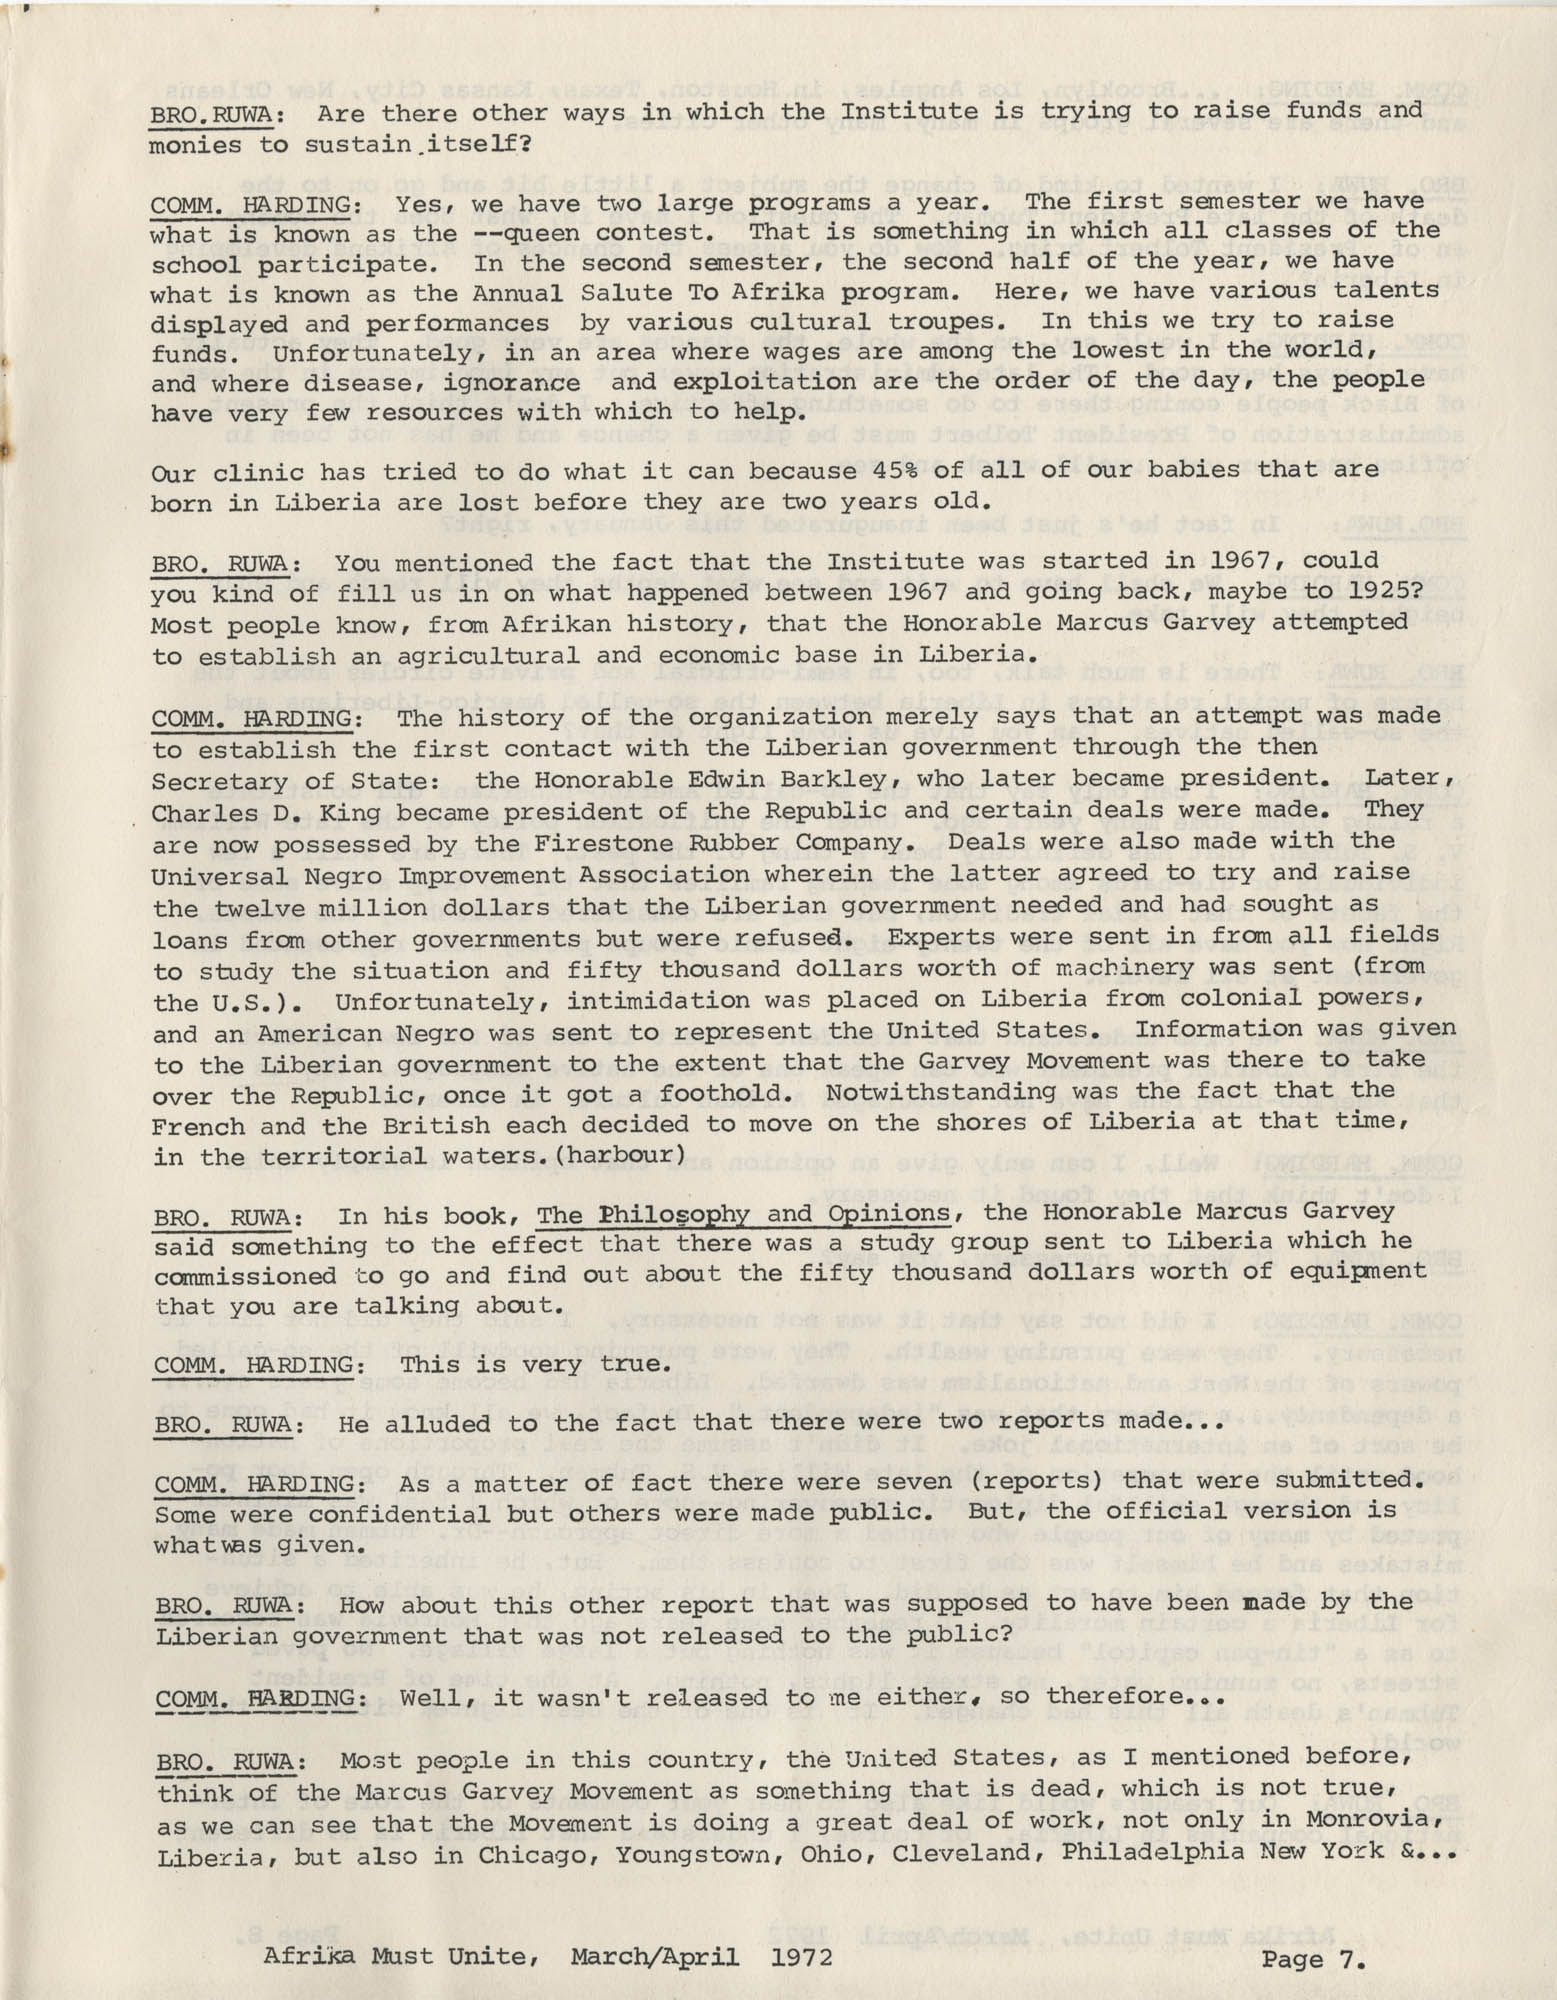 Afrika Must Unite, Vol. 1, No. 4, Page 7